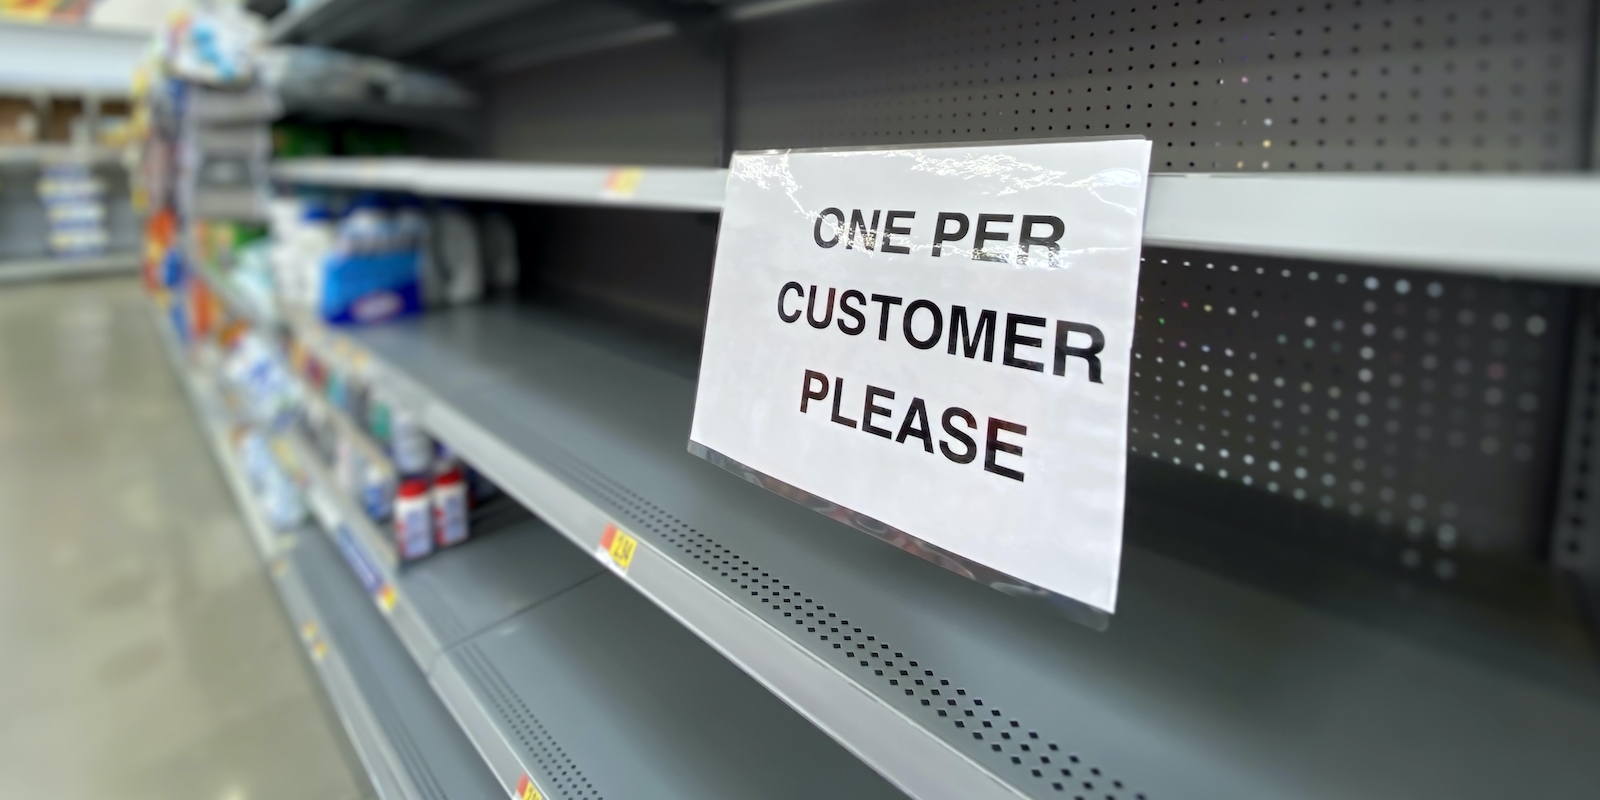 Panic buying in the Coronavirus emergency and what a lean supply chain should look like